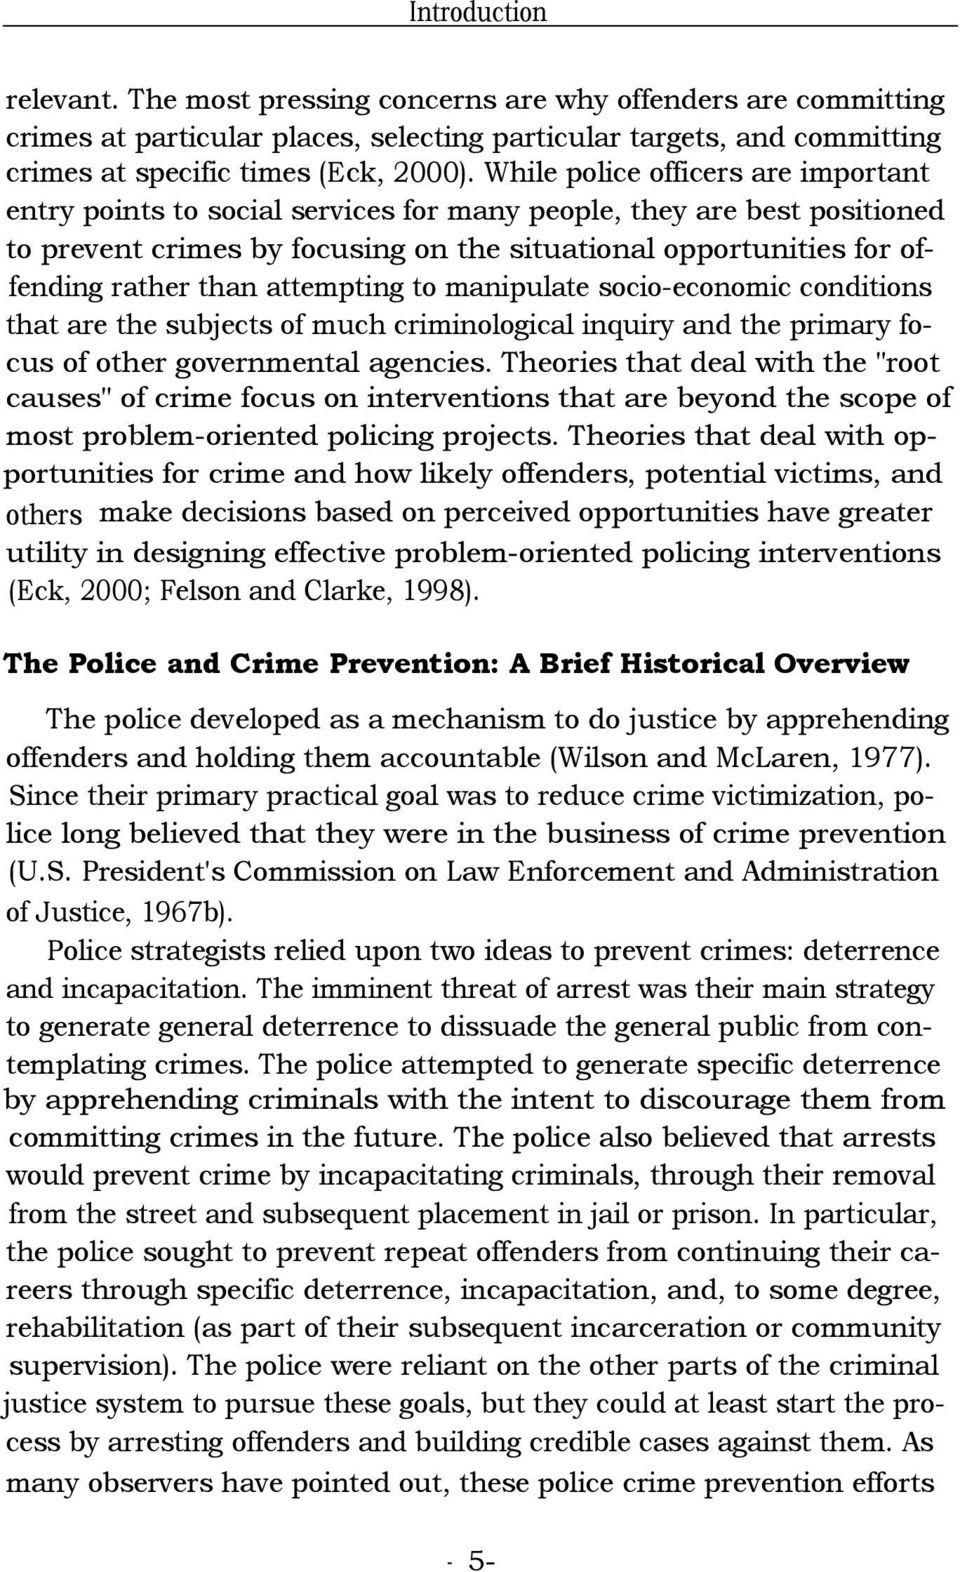 attempting to manipulate socio-economic conditions that are the subjects of much criminological inquiry and the primary focus of other governmental agencies.